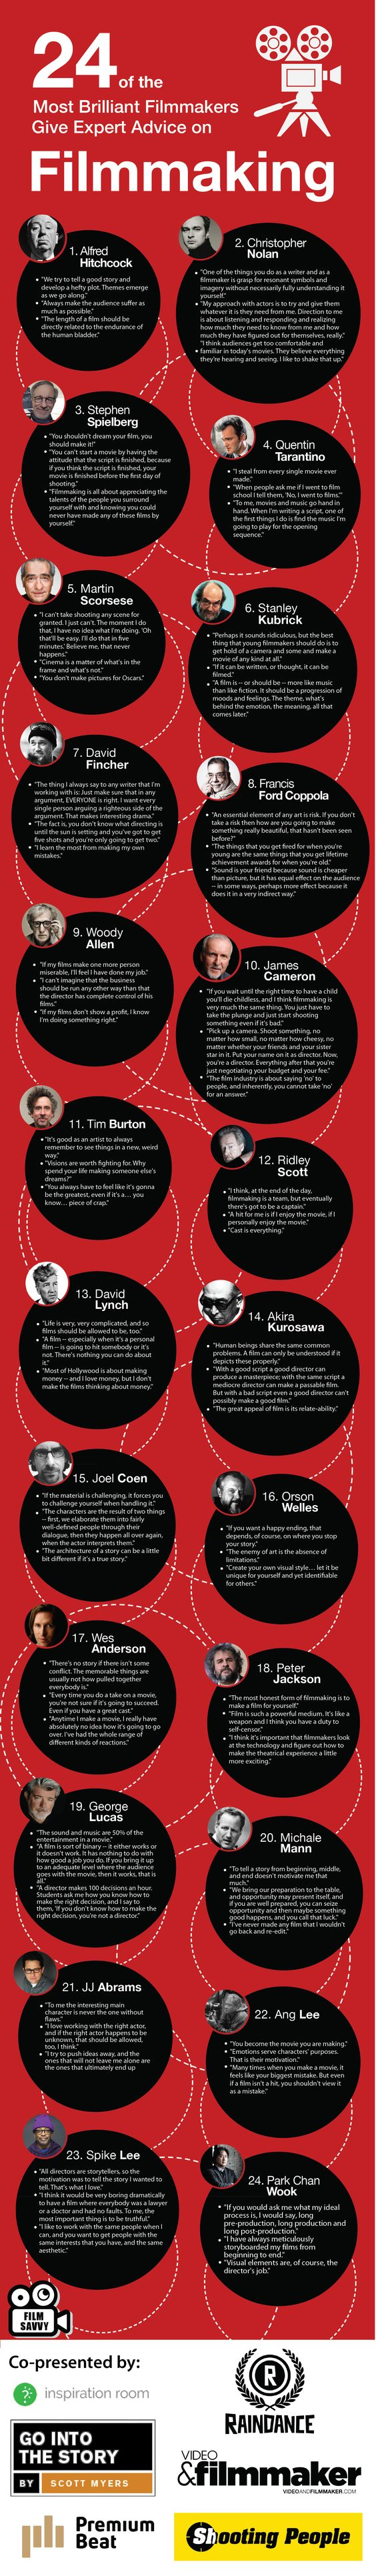 24 of the best filmmakers give their advice on filmmaking